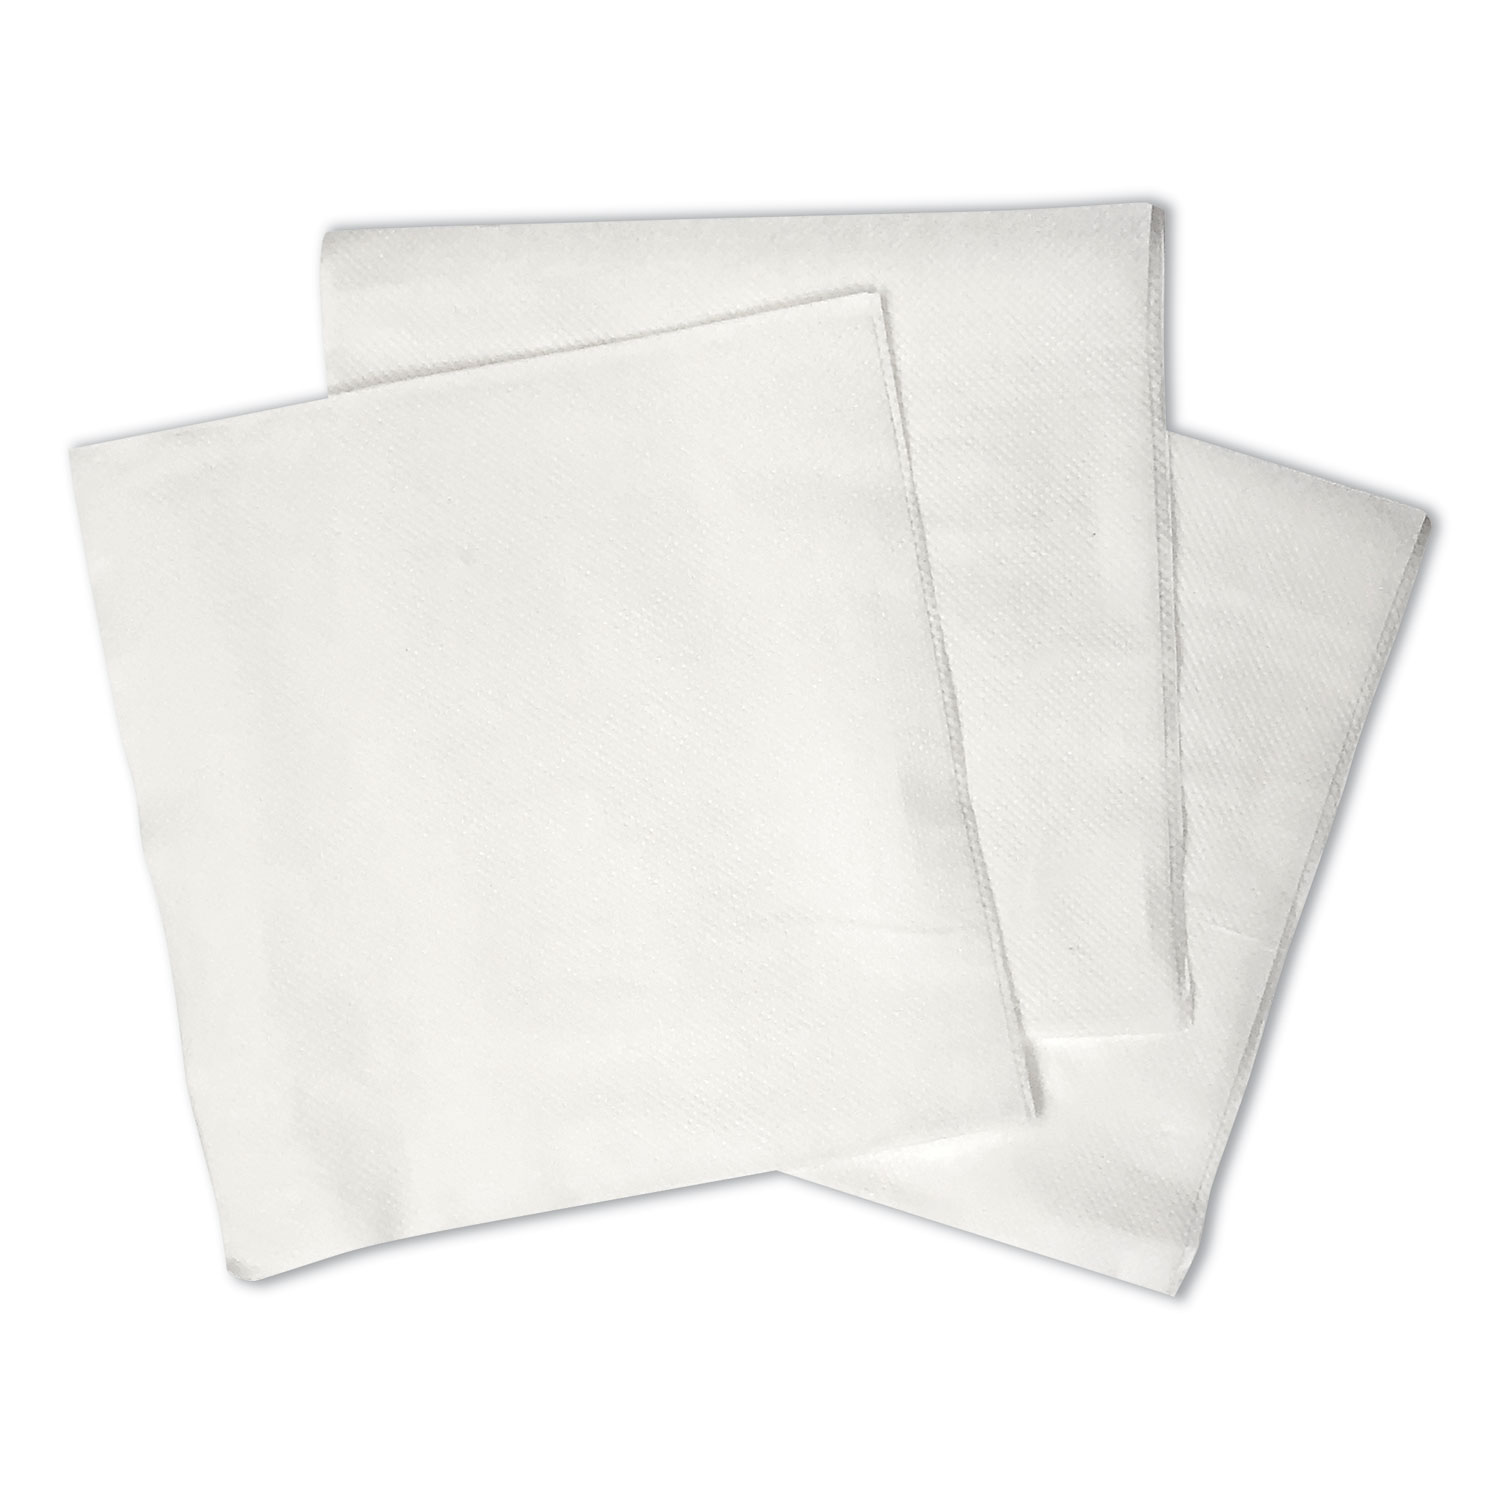 "1/4-Fold Lunch Napkins, 1-Ply, 12"" x 12"", White, 6000/Carton"